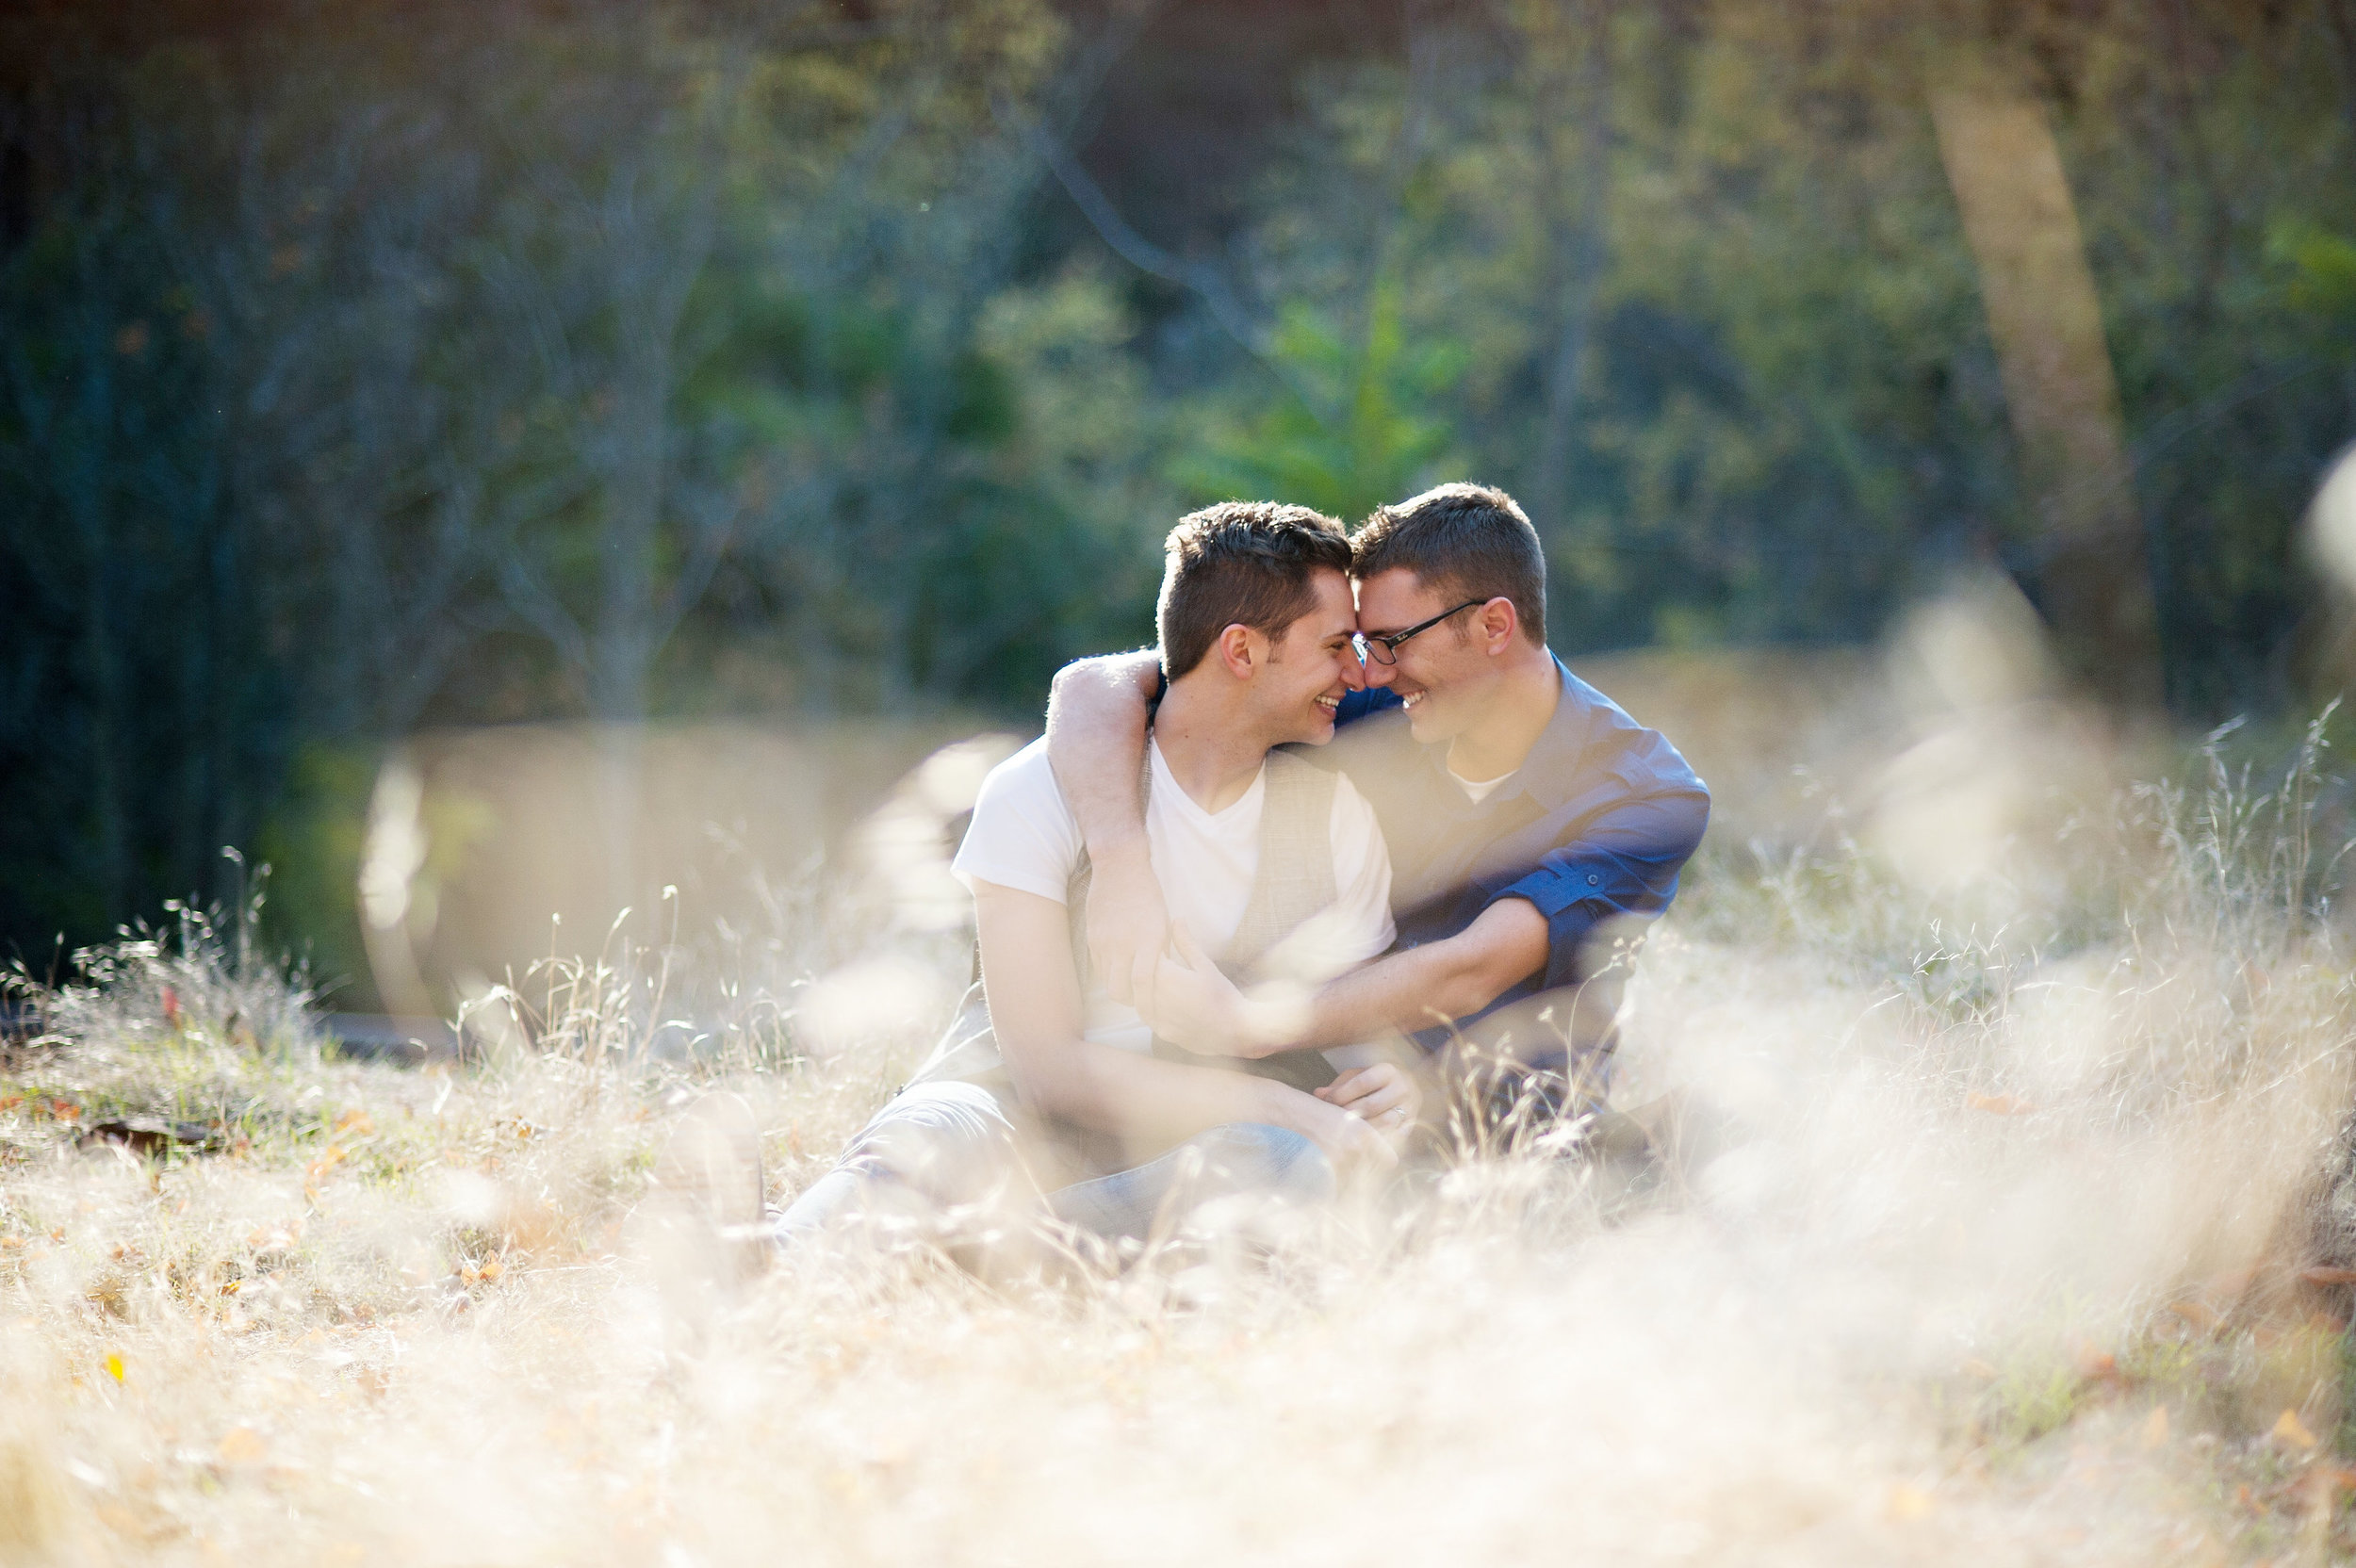 josh-parker-017-sacramento-same-sex-engagement-wedding-photographer-katherine-nicole-photography.JPG